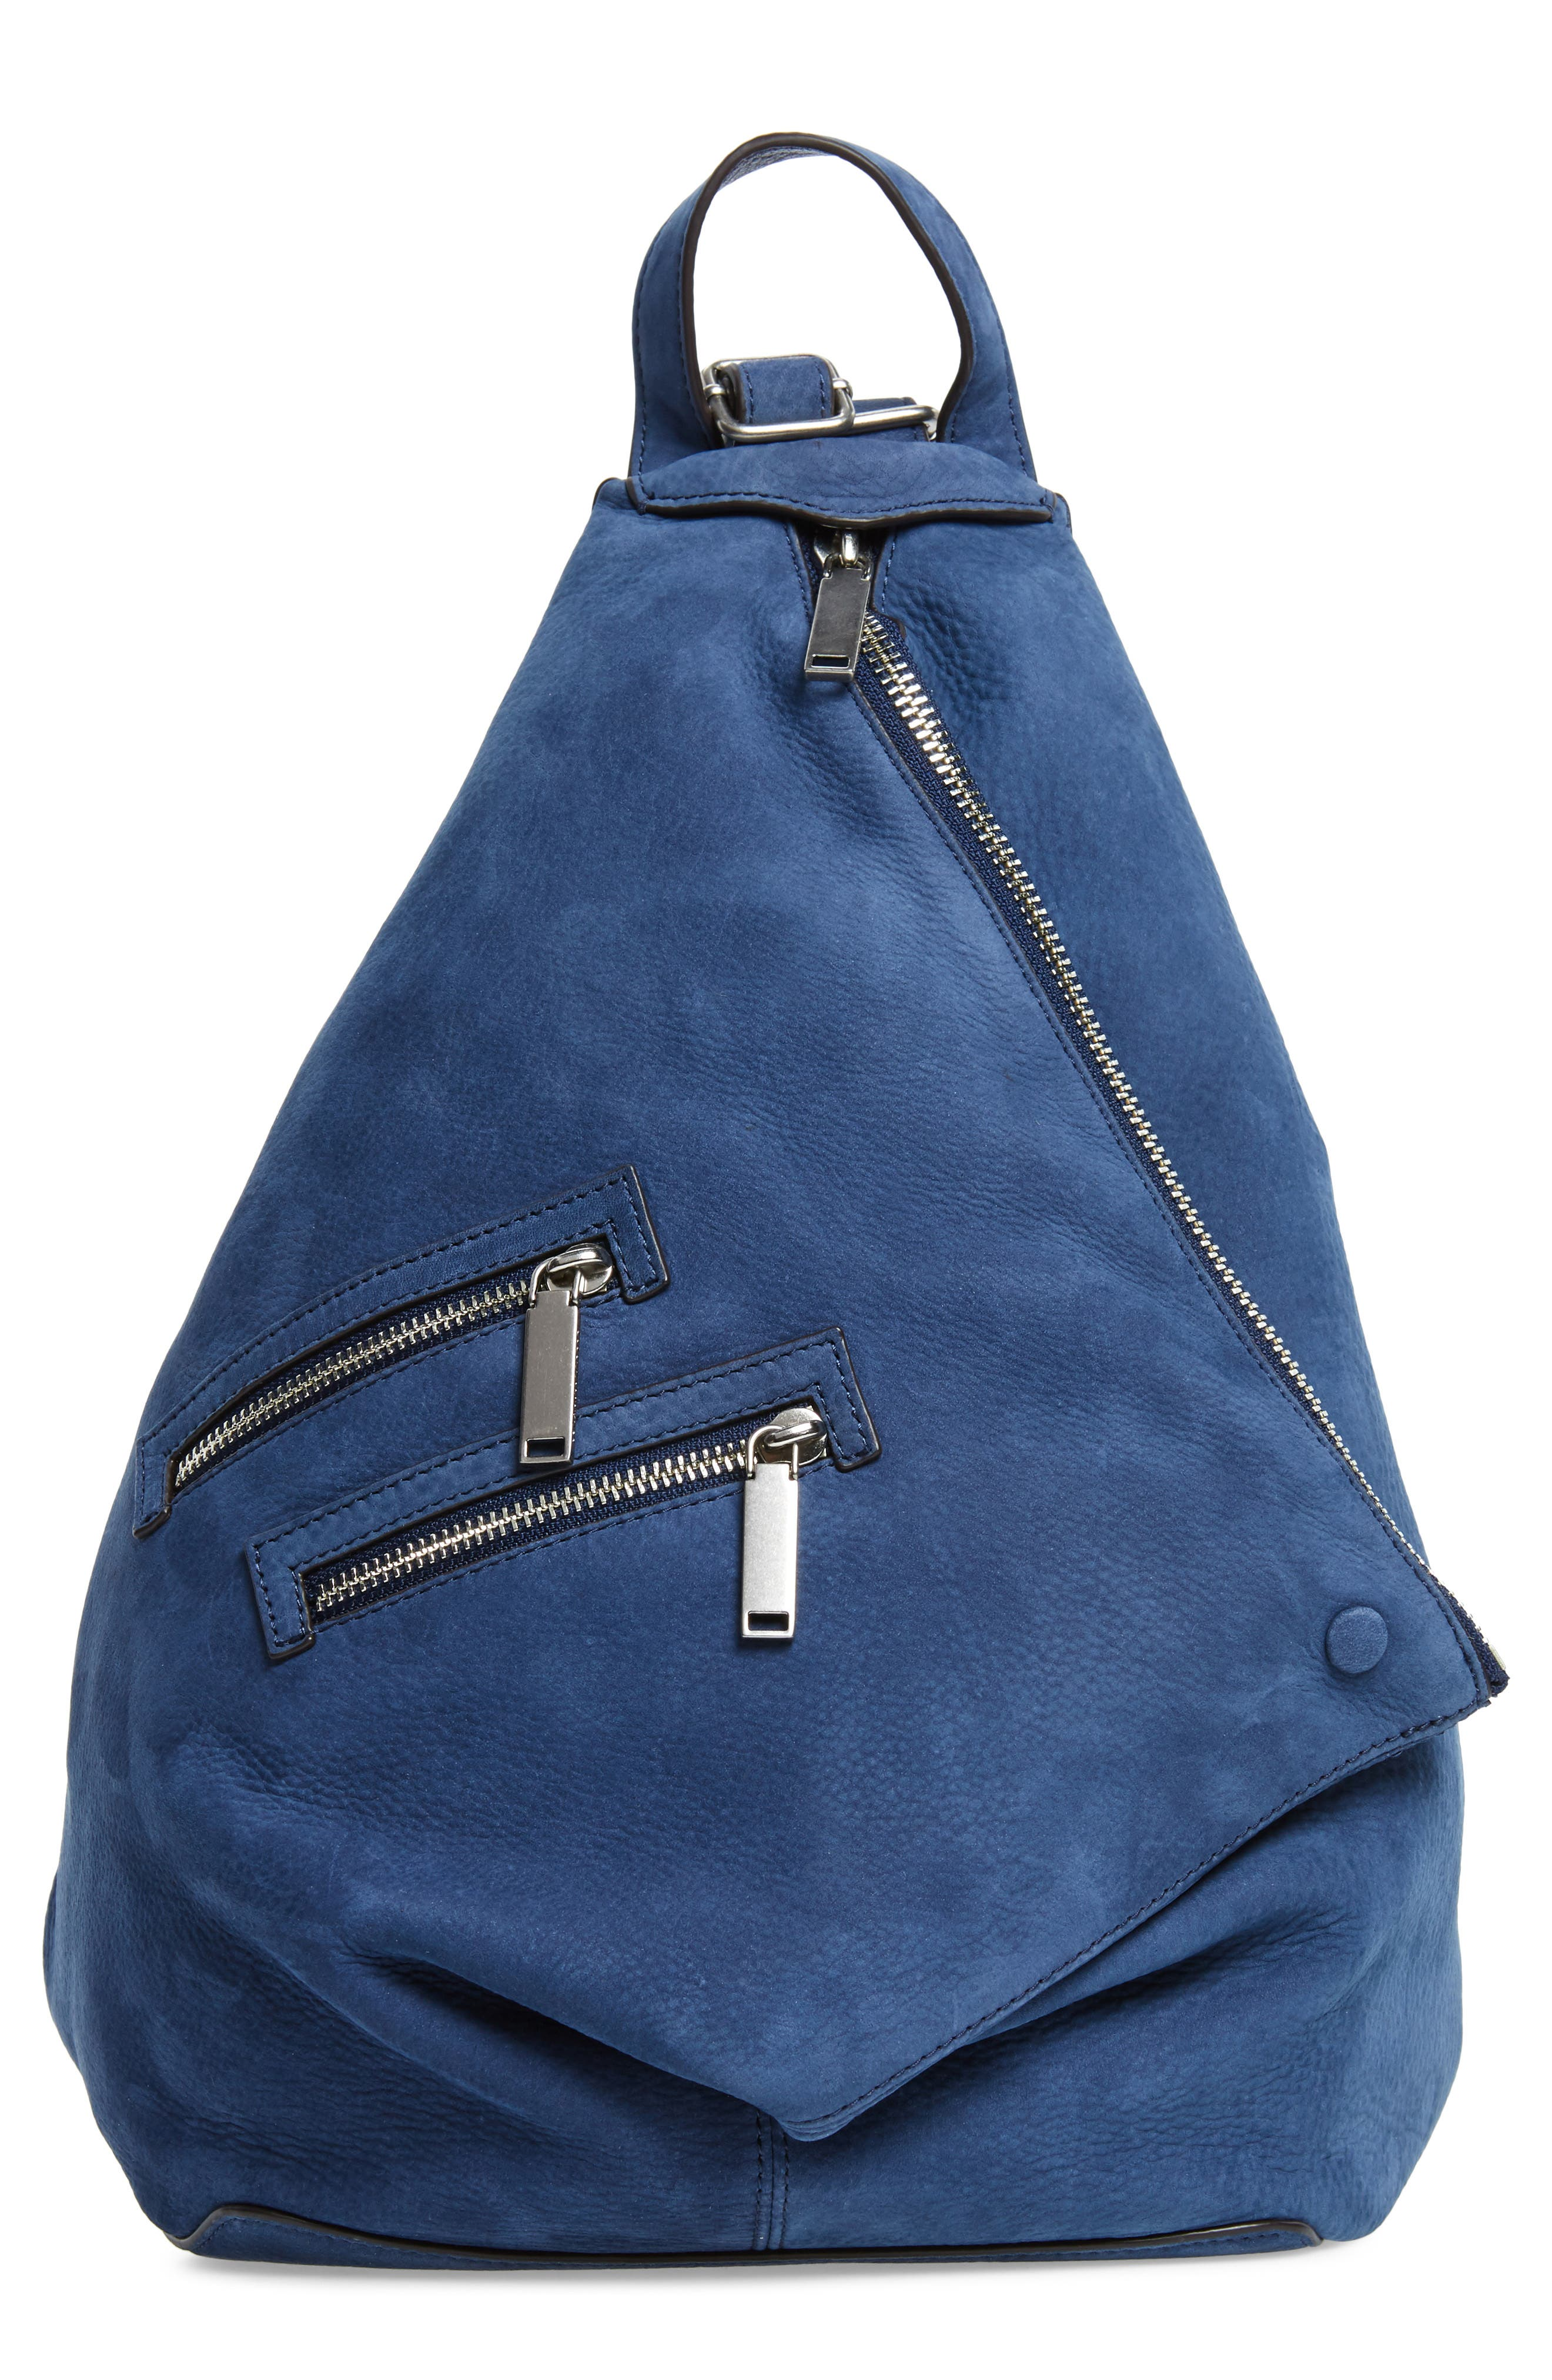 Jamie Nubuck Leather Backpack,                         Main,                         color, True Navy